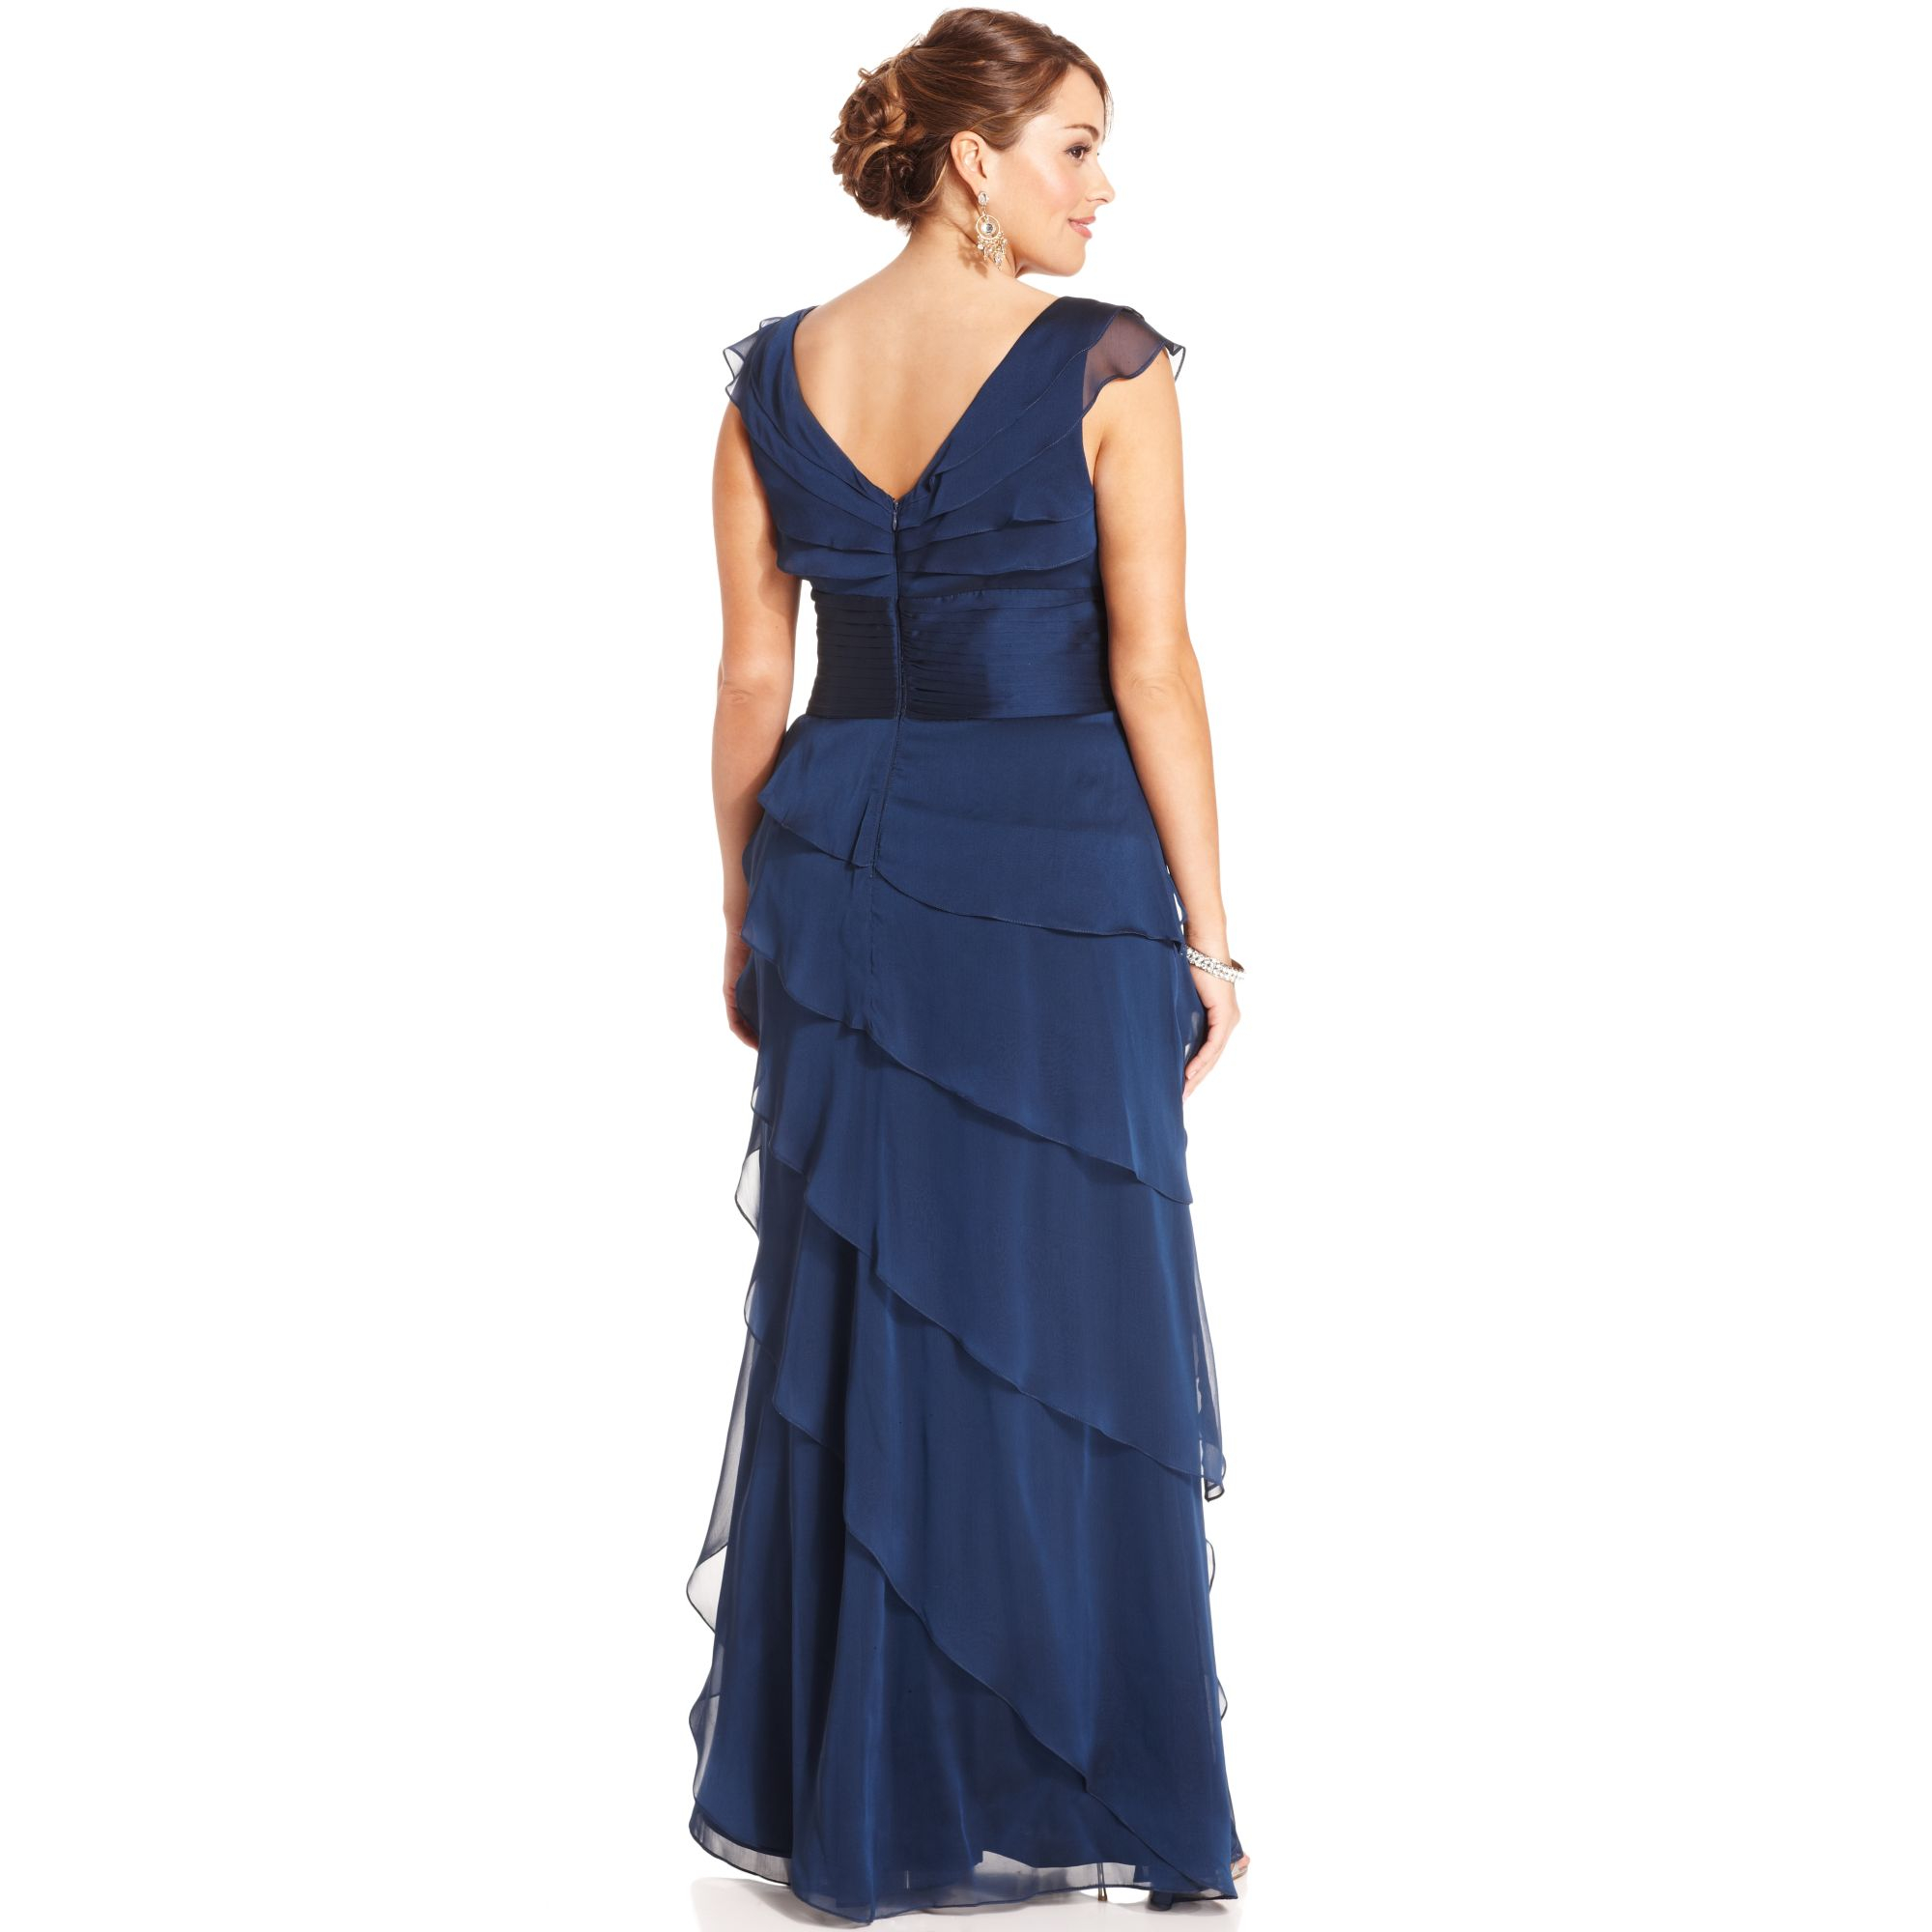 Adrianna papell Sleeveless Tiered Empire Waist Evening Gown in ...